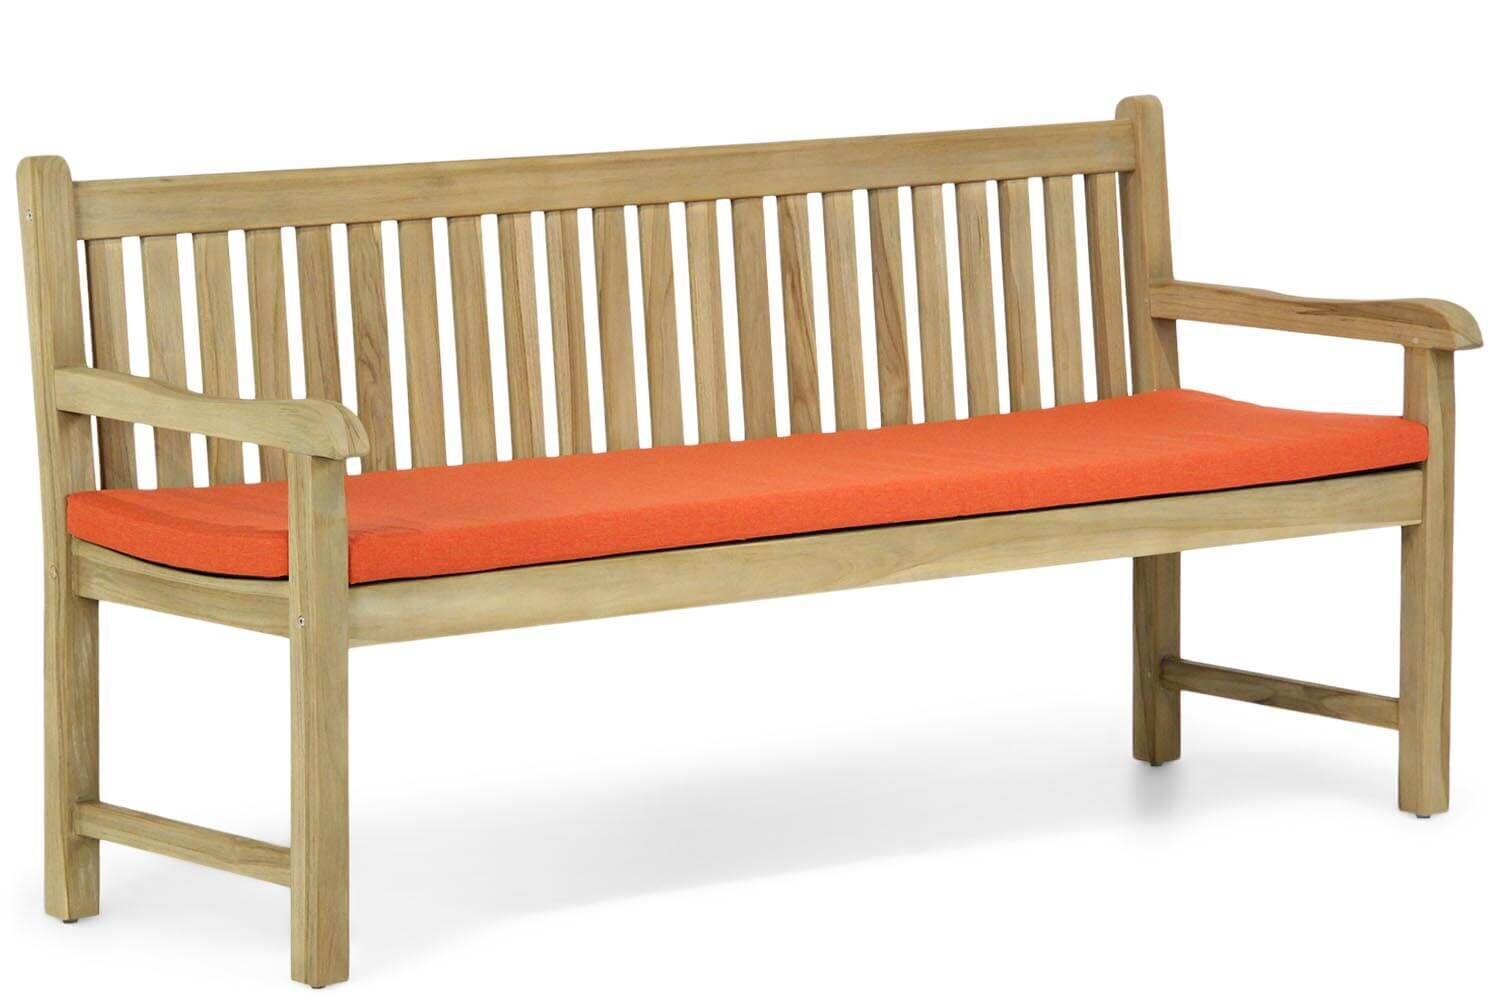 Garden Collections Preston tuinbank teak 180 cm incl. orange kussen